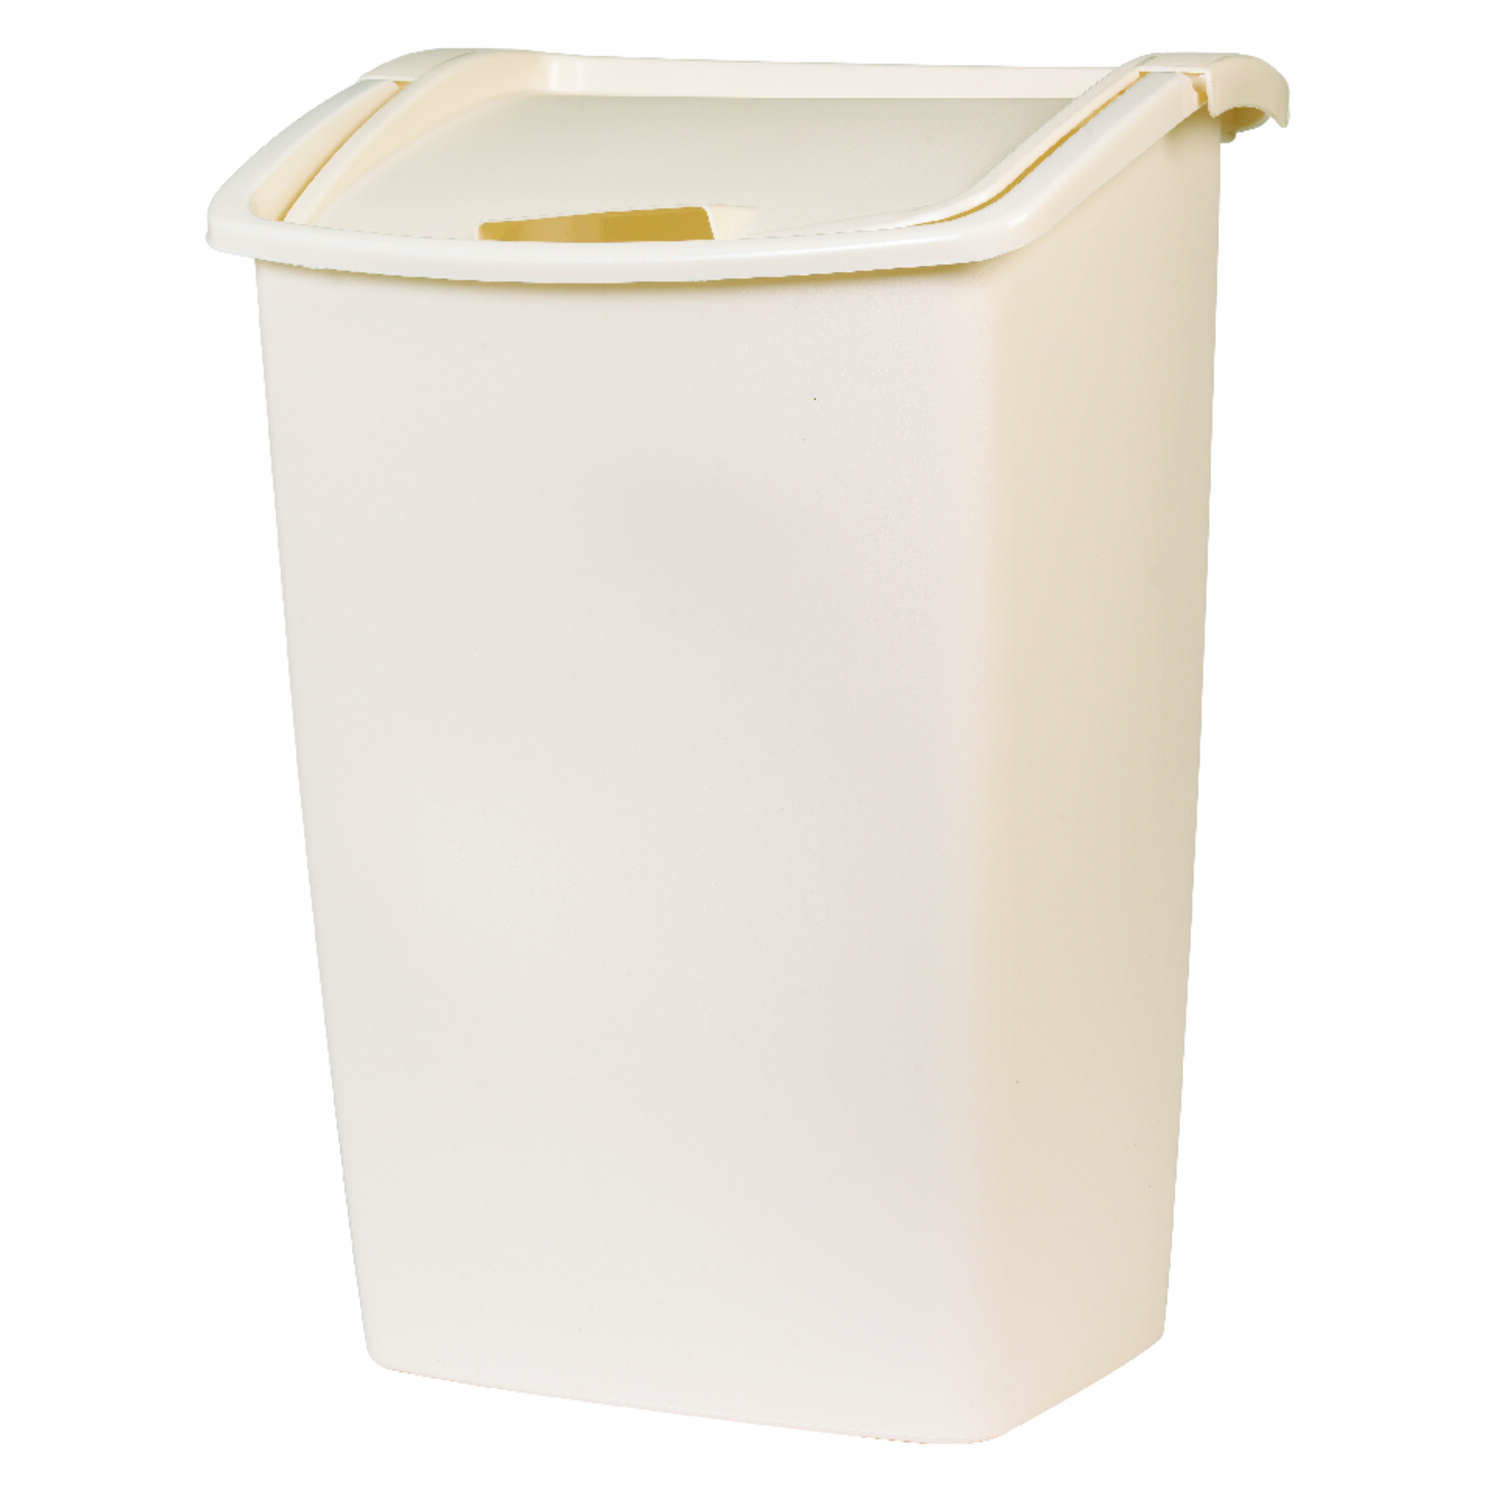 Rubbermaid  11.25 gal. Bisque  Swing-Out  Wastebasket